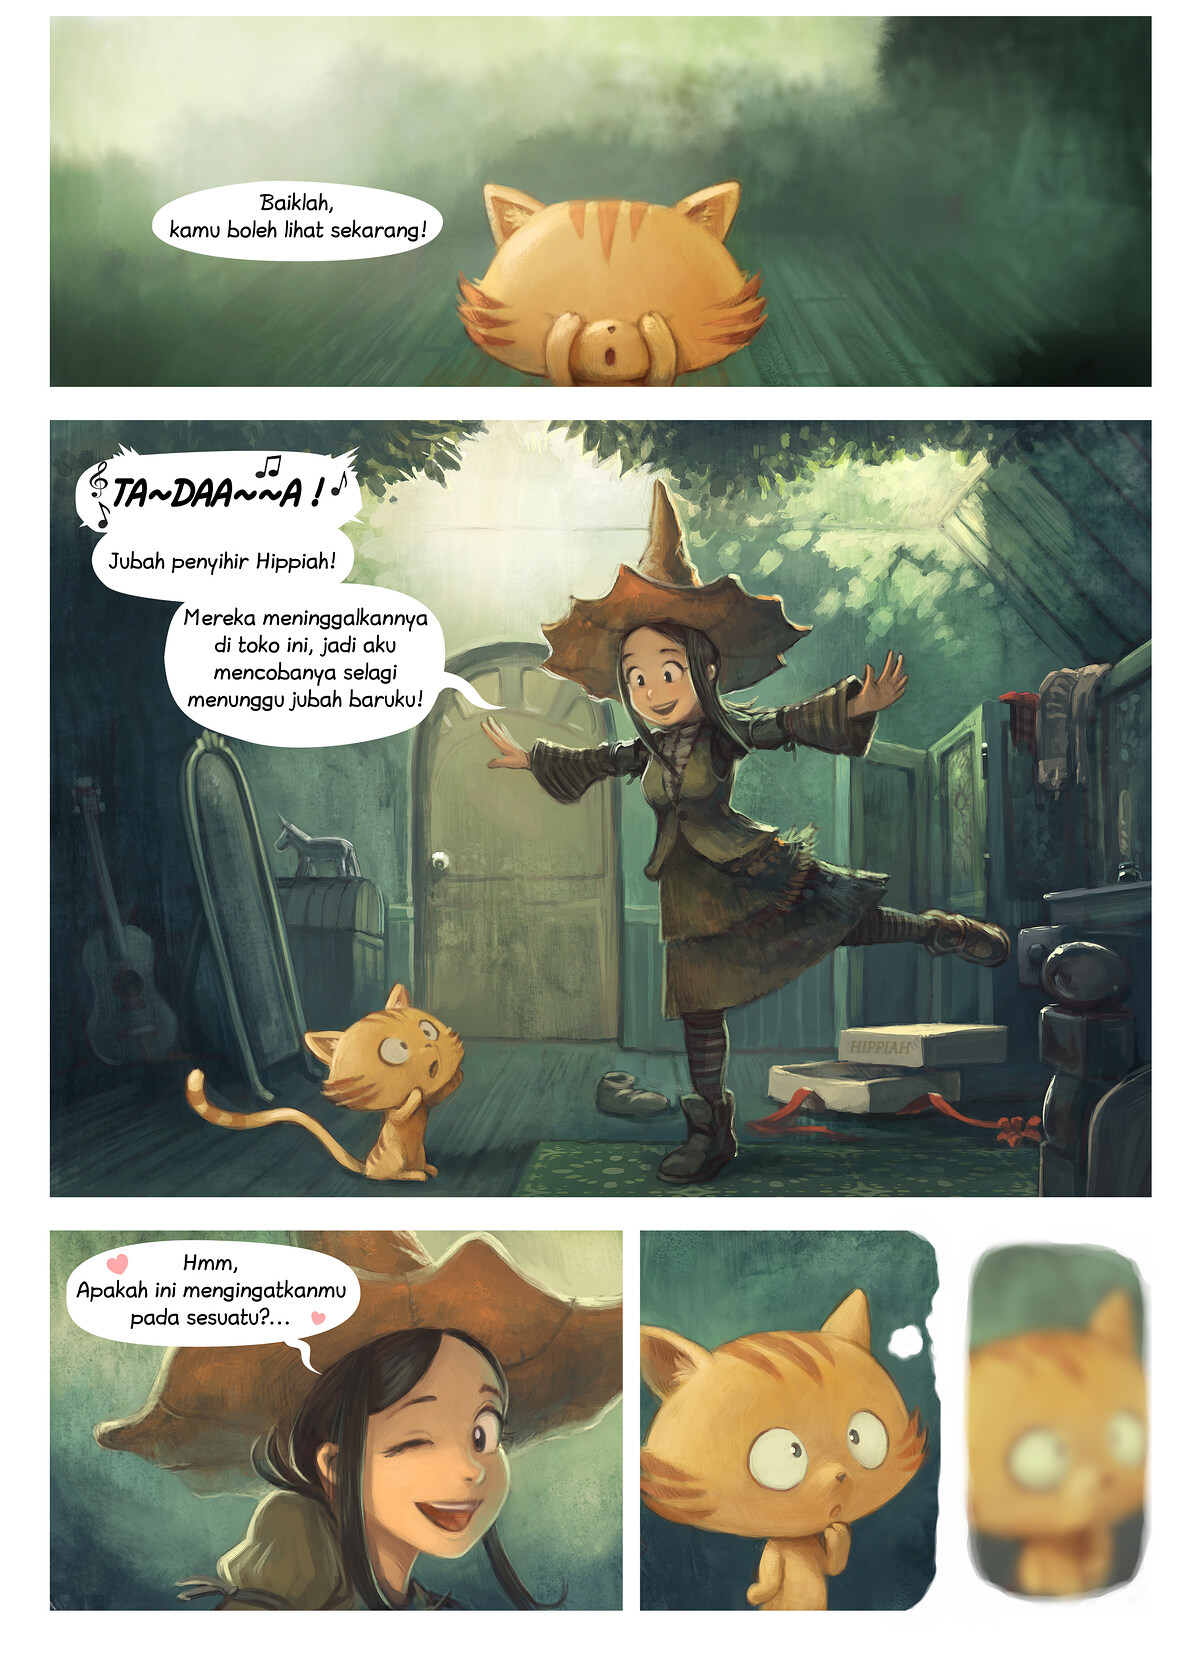 A webcomic page of Pepper&Carrot, episode 18 [id], halaman 1